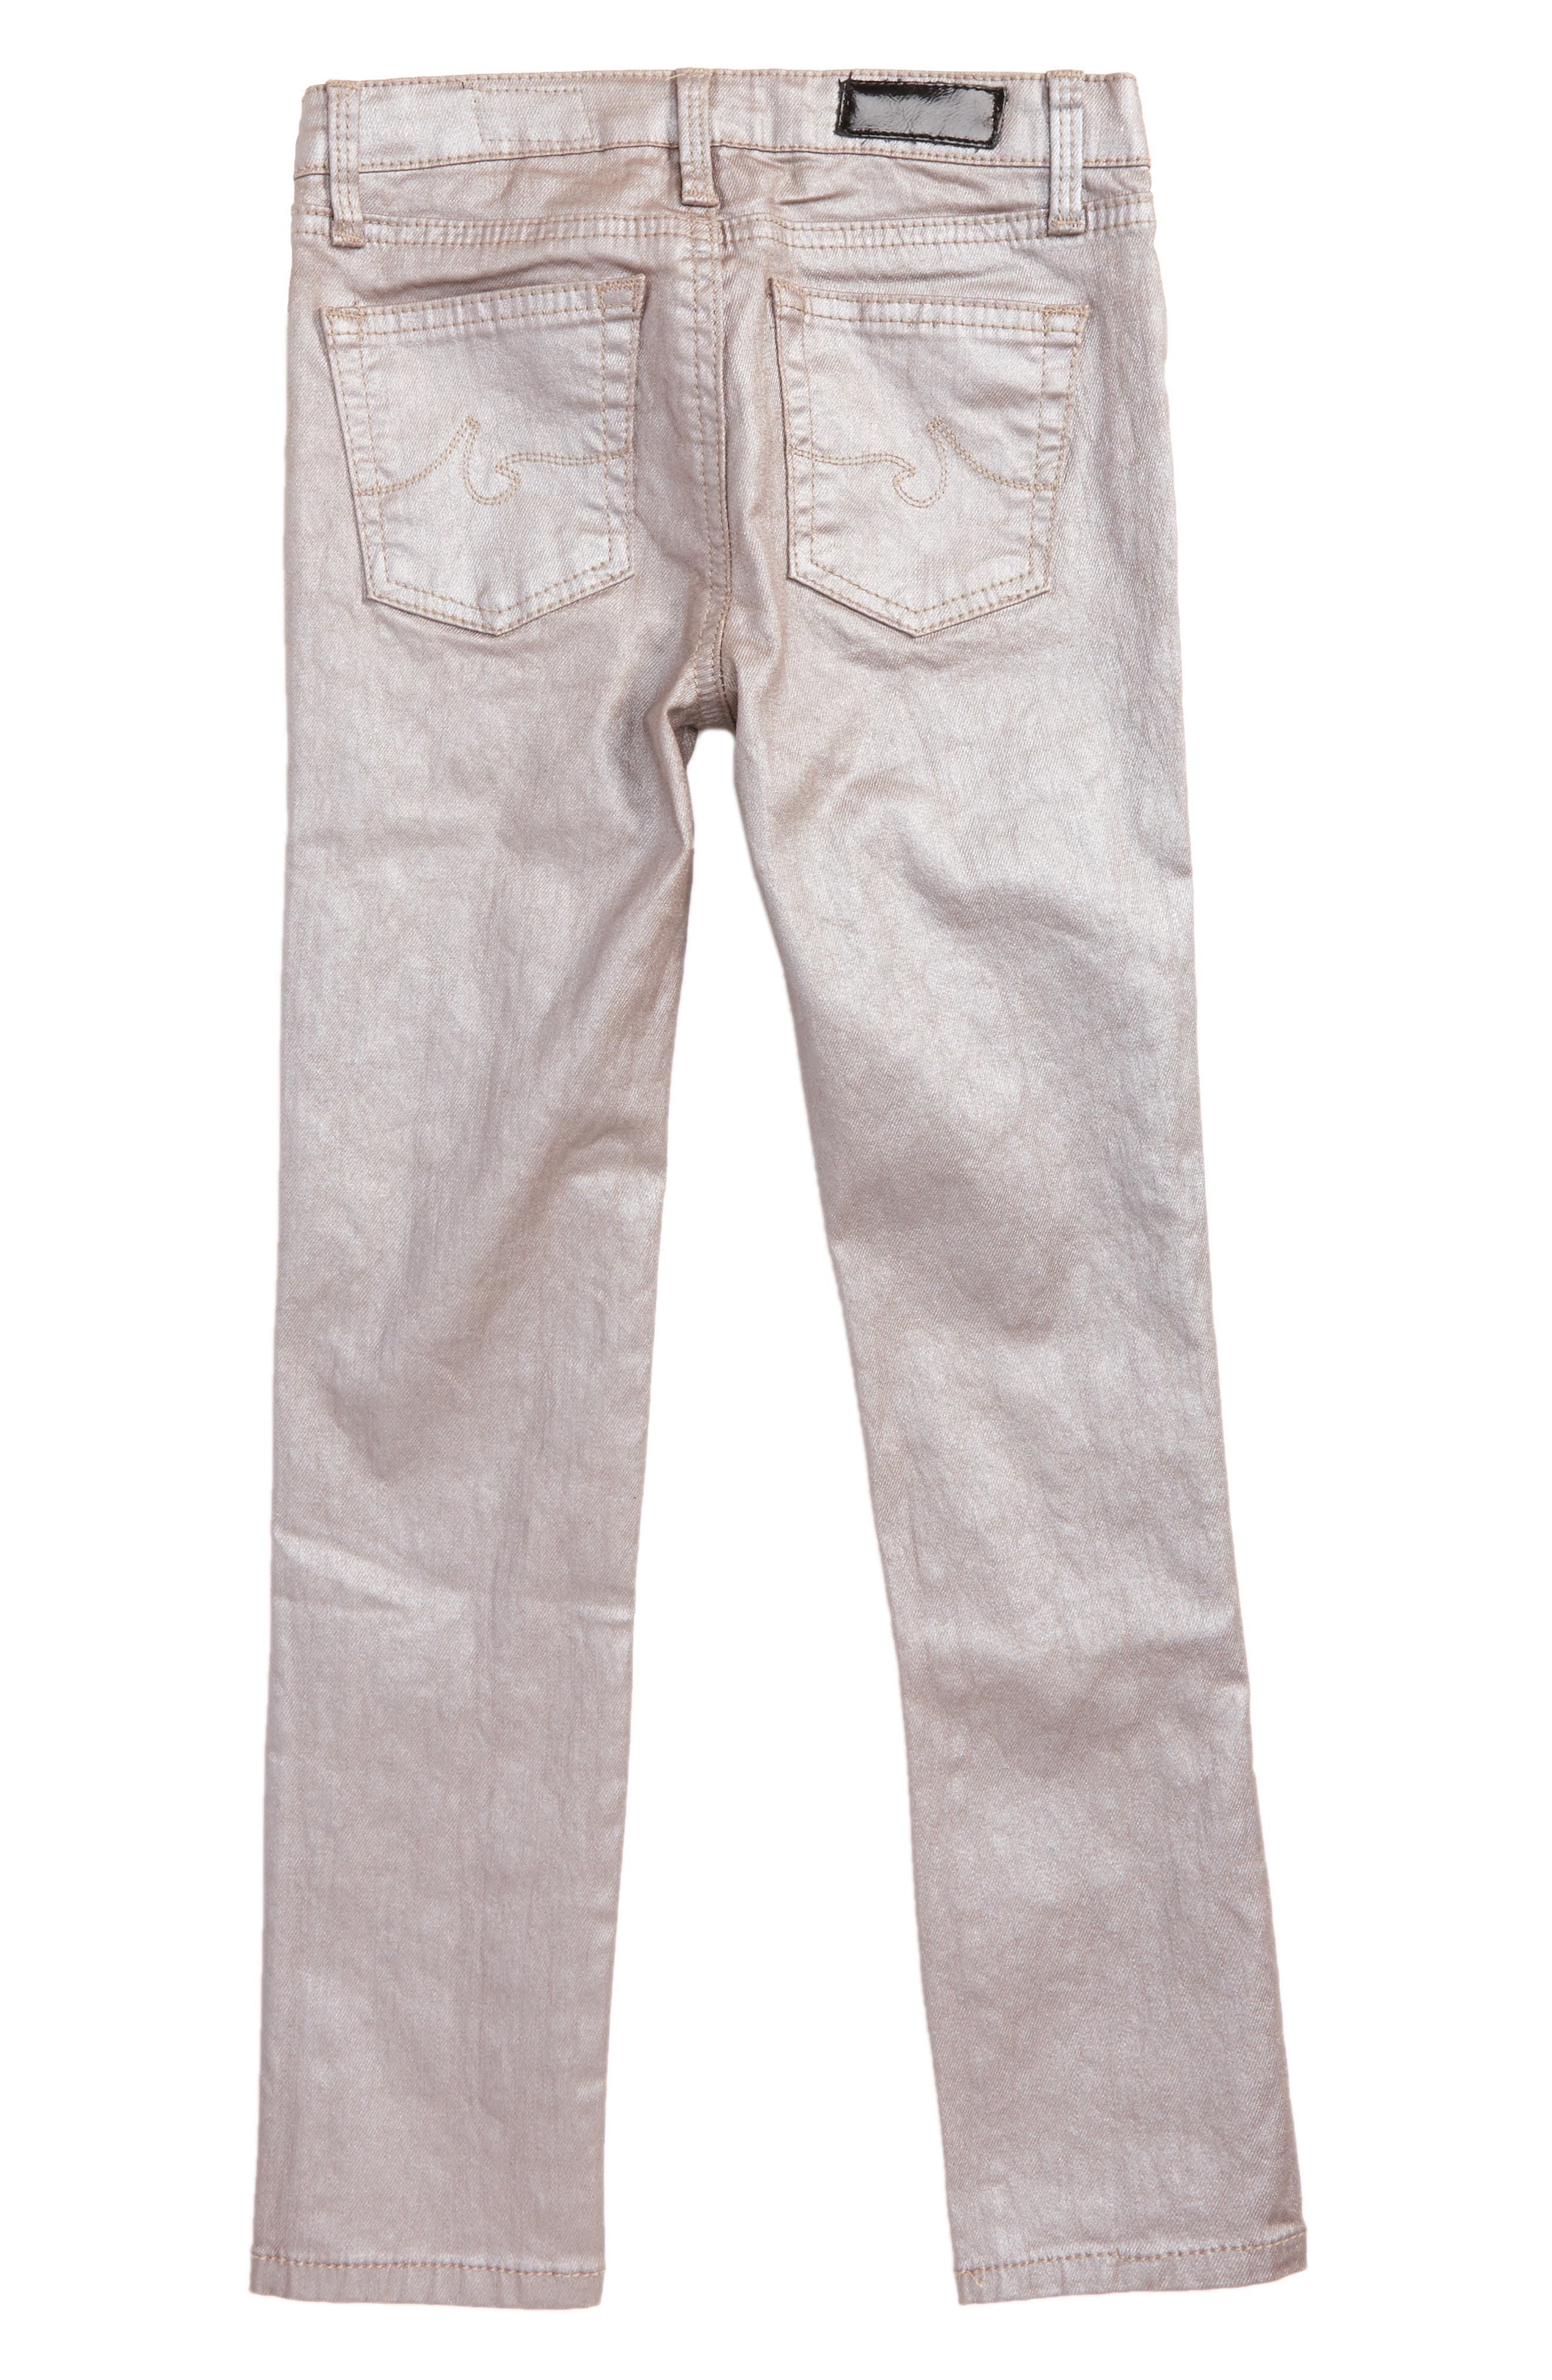 Alternate Image 2  - ag adriano goldschmied kids The Sleek Twiggy Skinny Ankle Jeans (Toddler Girls & Little Girls)